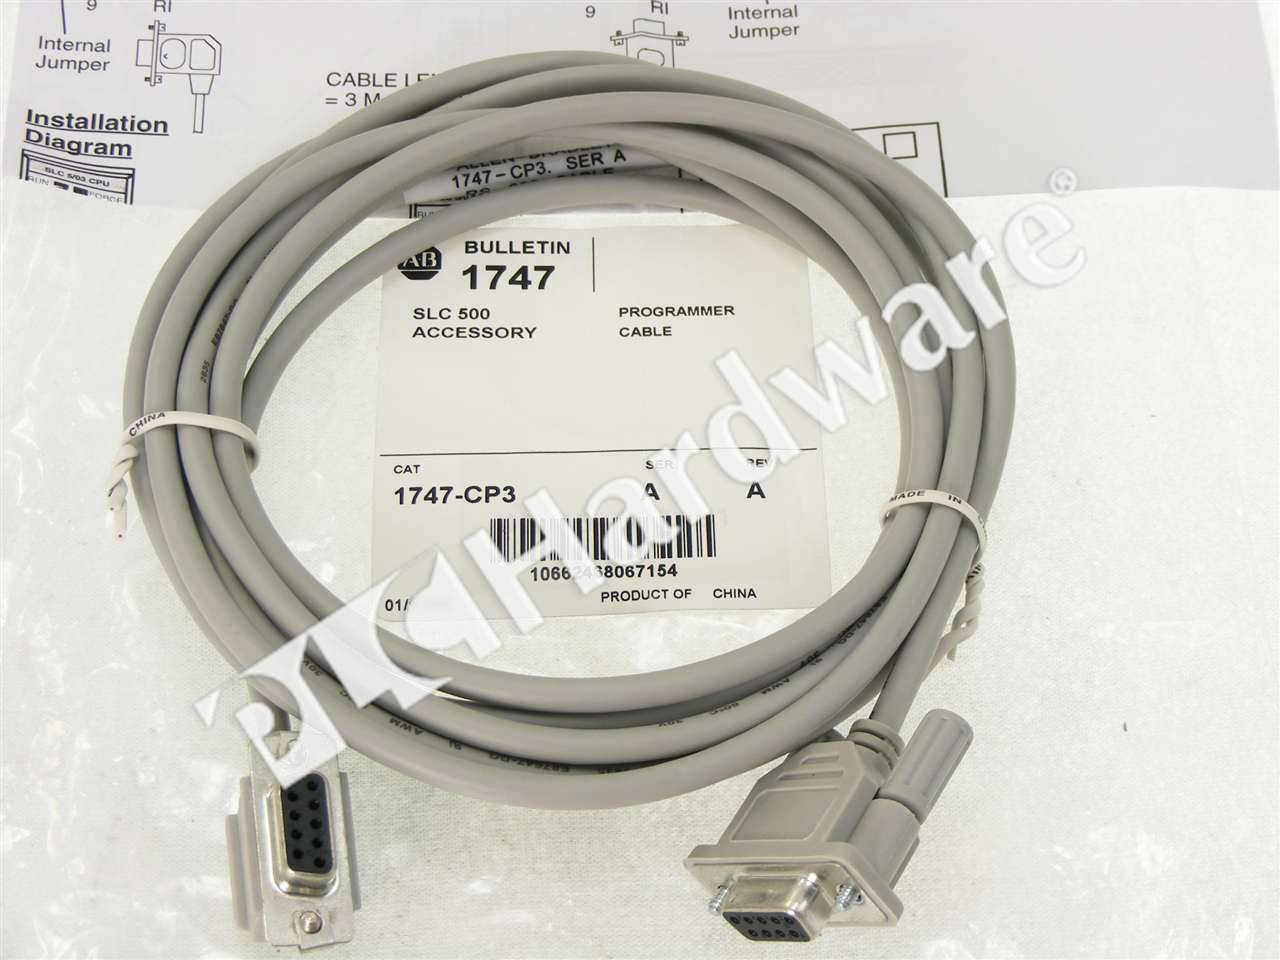 RA 1747 CP3 A NSO 2_b plc hardware allen bradley 1747 cp3 series a, new factory sealed 1747 c13 wiring diagram at edmiracle.co